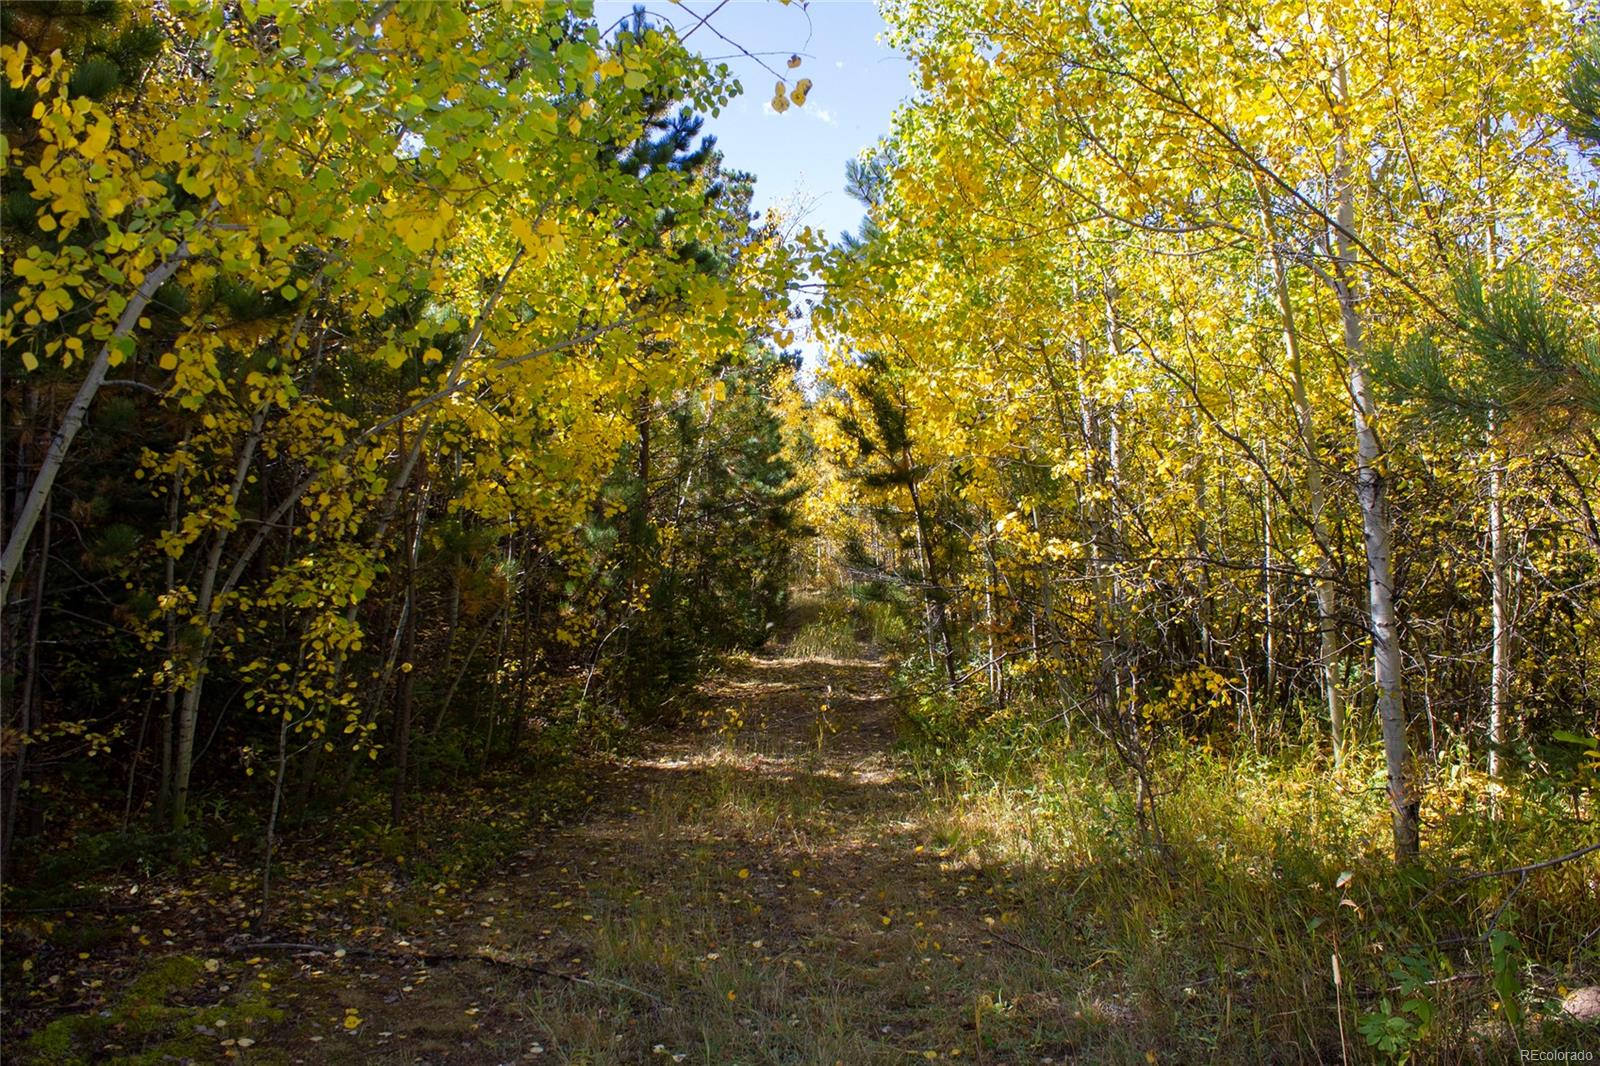 0 Rist Canyon Road, Bellvue, CO 80512 - Bellvue, CO real estate listing